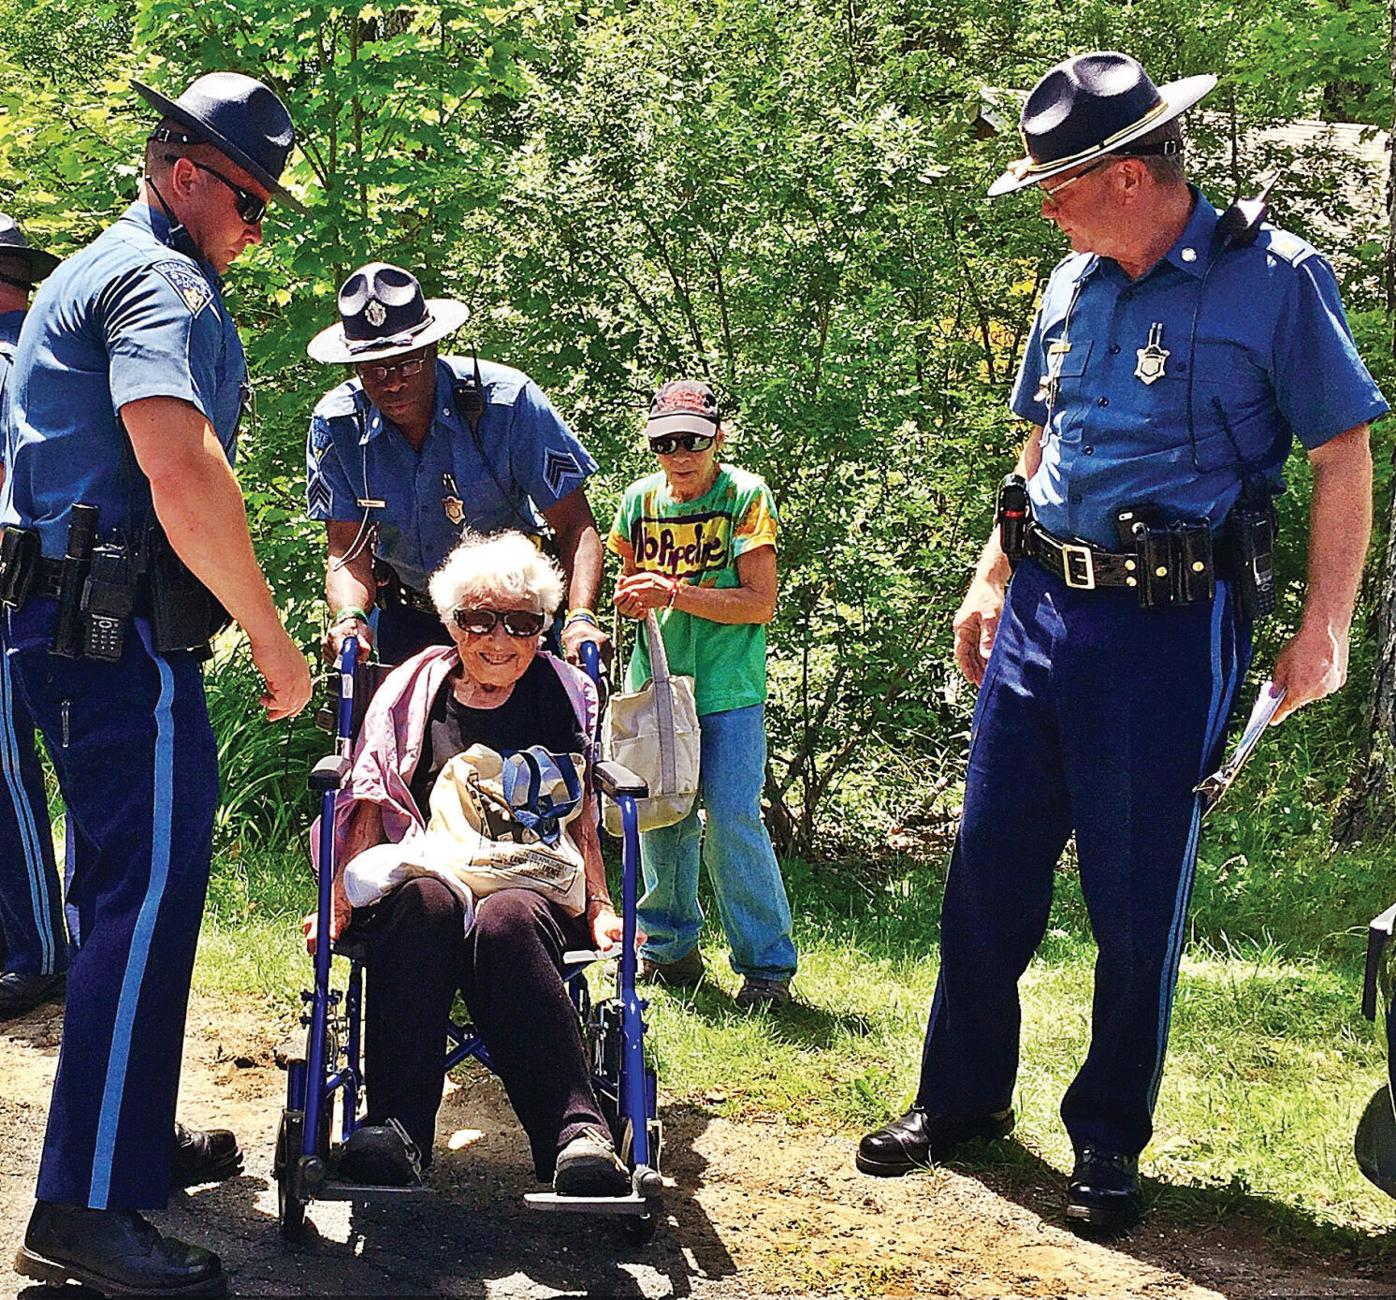 98-year-old woman arrested in pipeline protest: 'My life has been devoted to trying to wake people up'